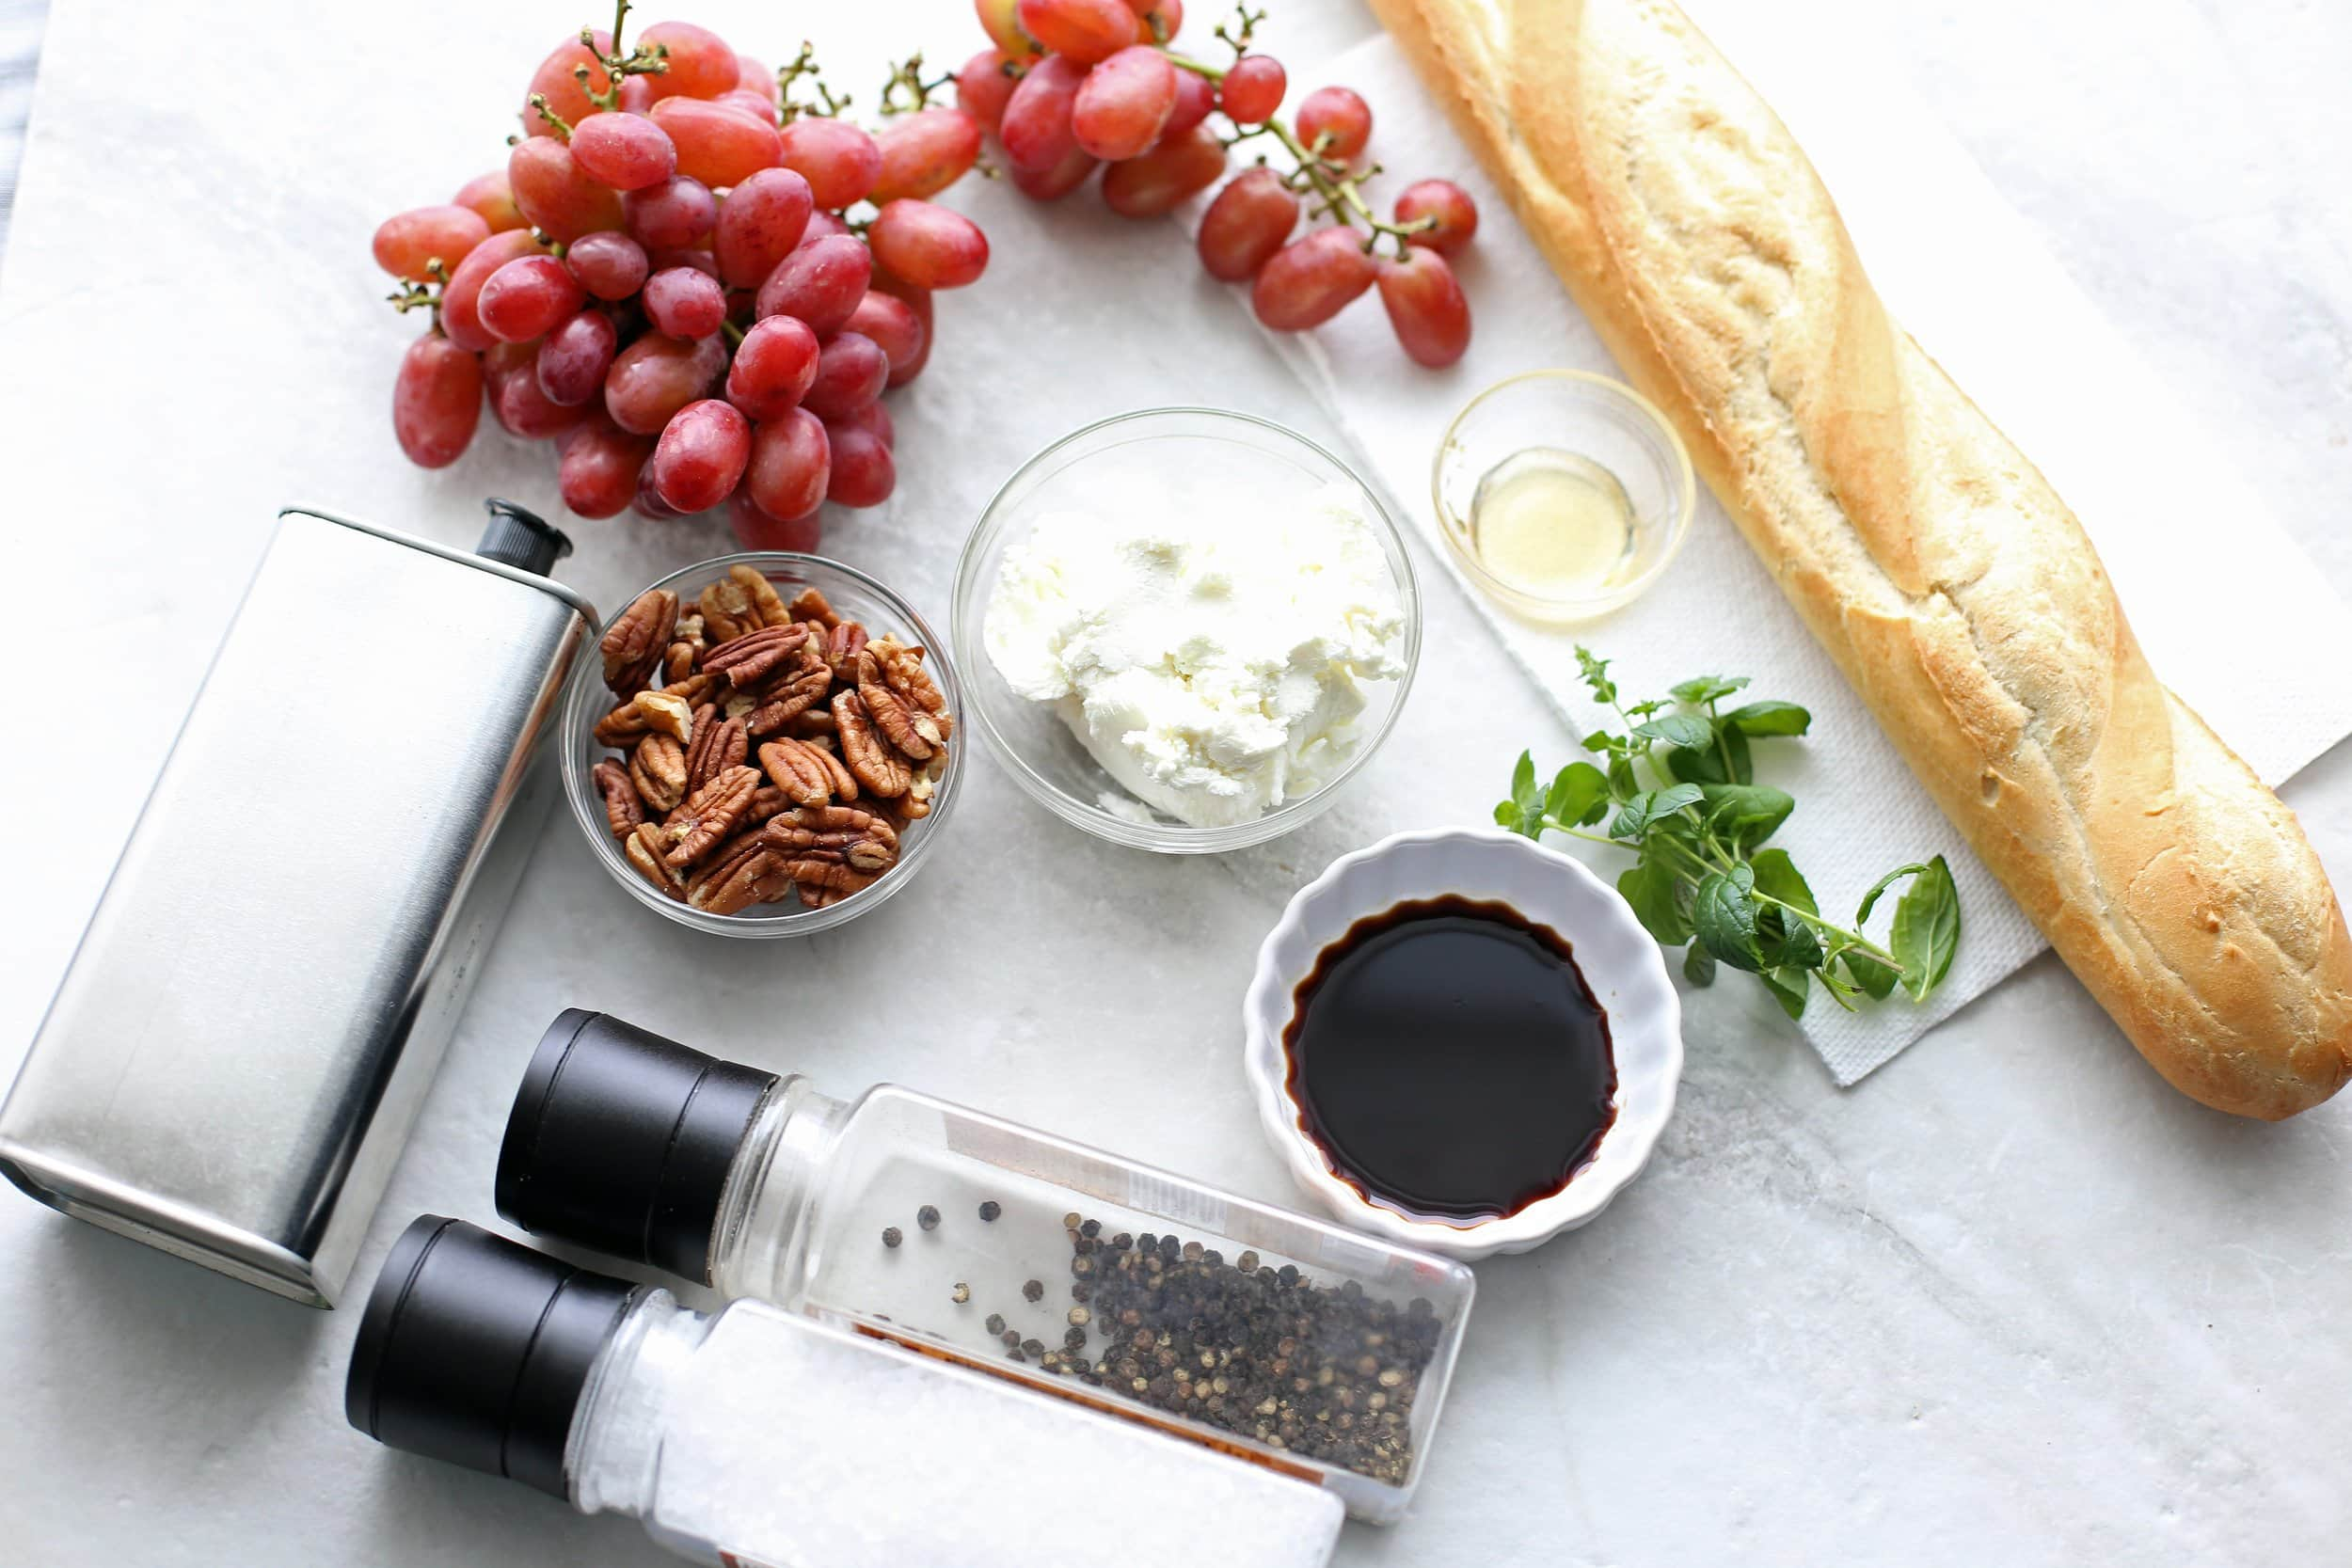 Overview of a baguette, red grapes, goat cheese, balsamic vinegar, fresh mint, pecans, olive oil, salt, and pepper.